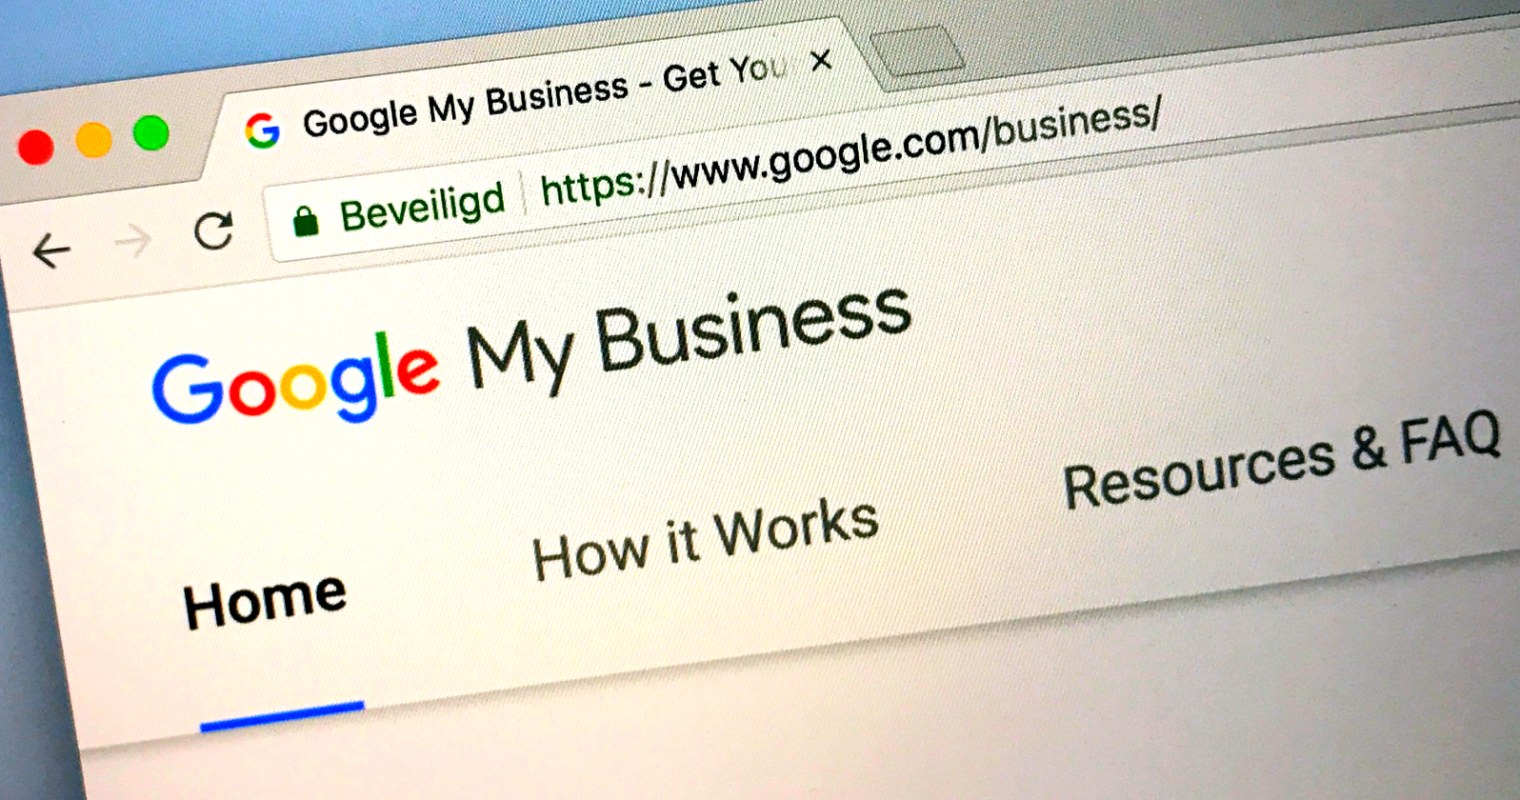 Google My Business Has New Tools and Tips for Responding to Reviews